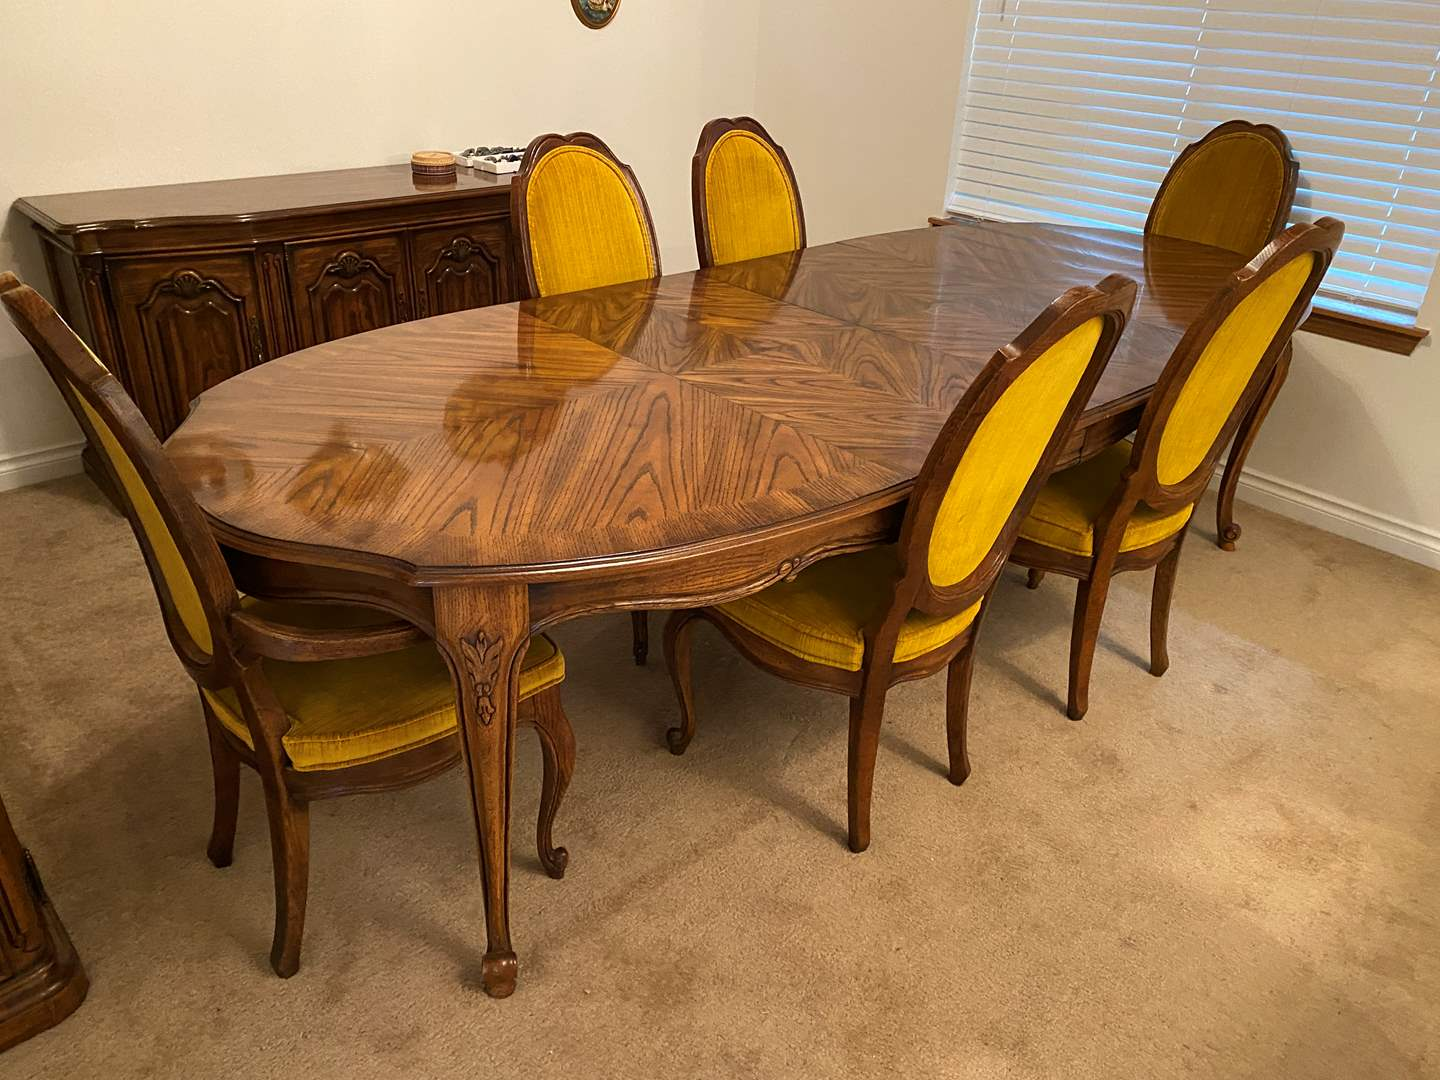 """Lot # 111 - Vintage Chiatillon by Drexel Dining Room Table w/ Two 20"""" Leaves & Six Chairs (main image)"""